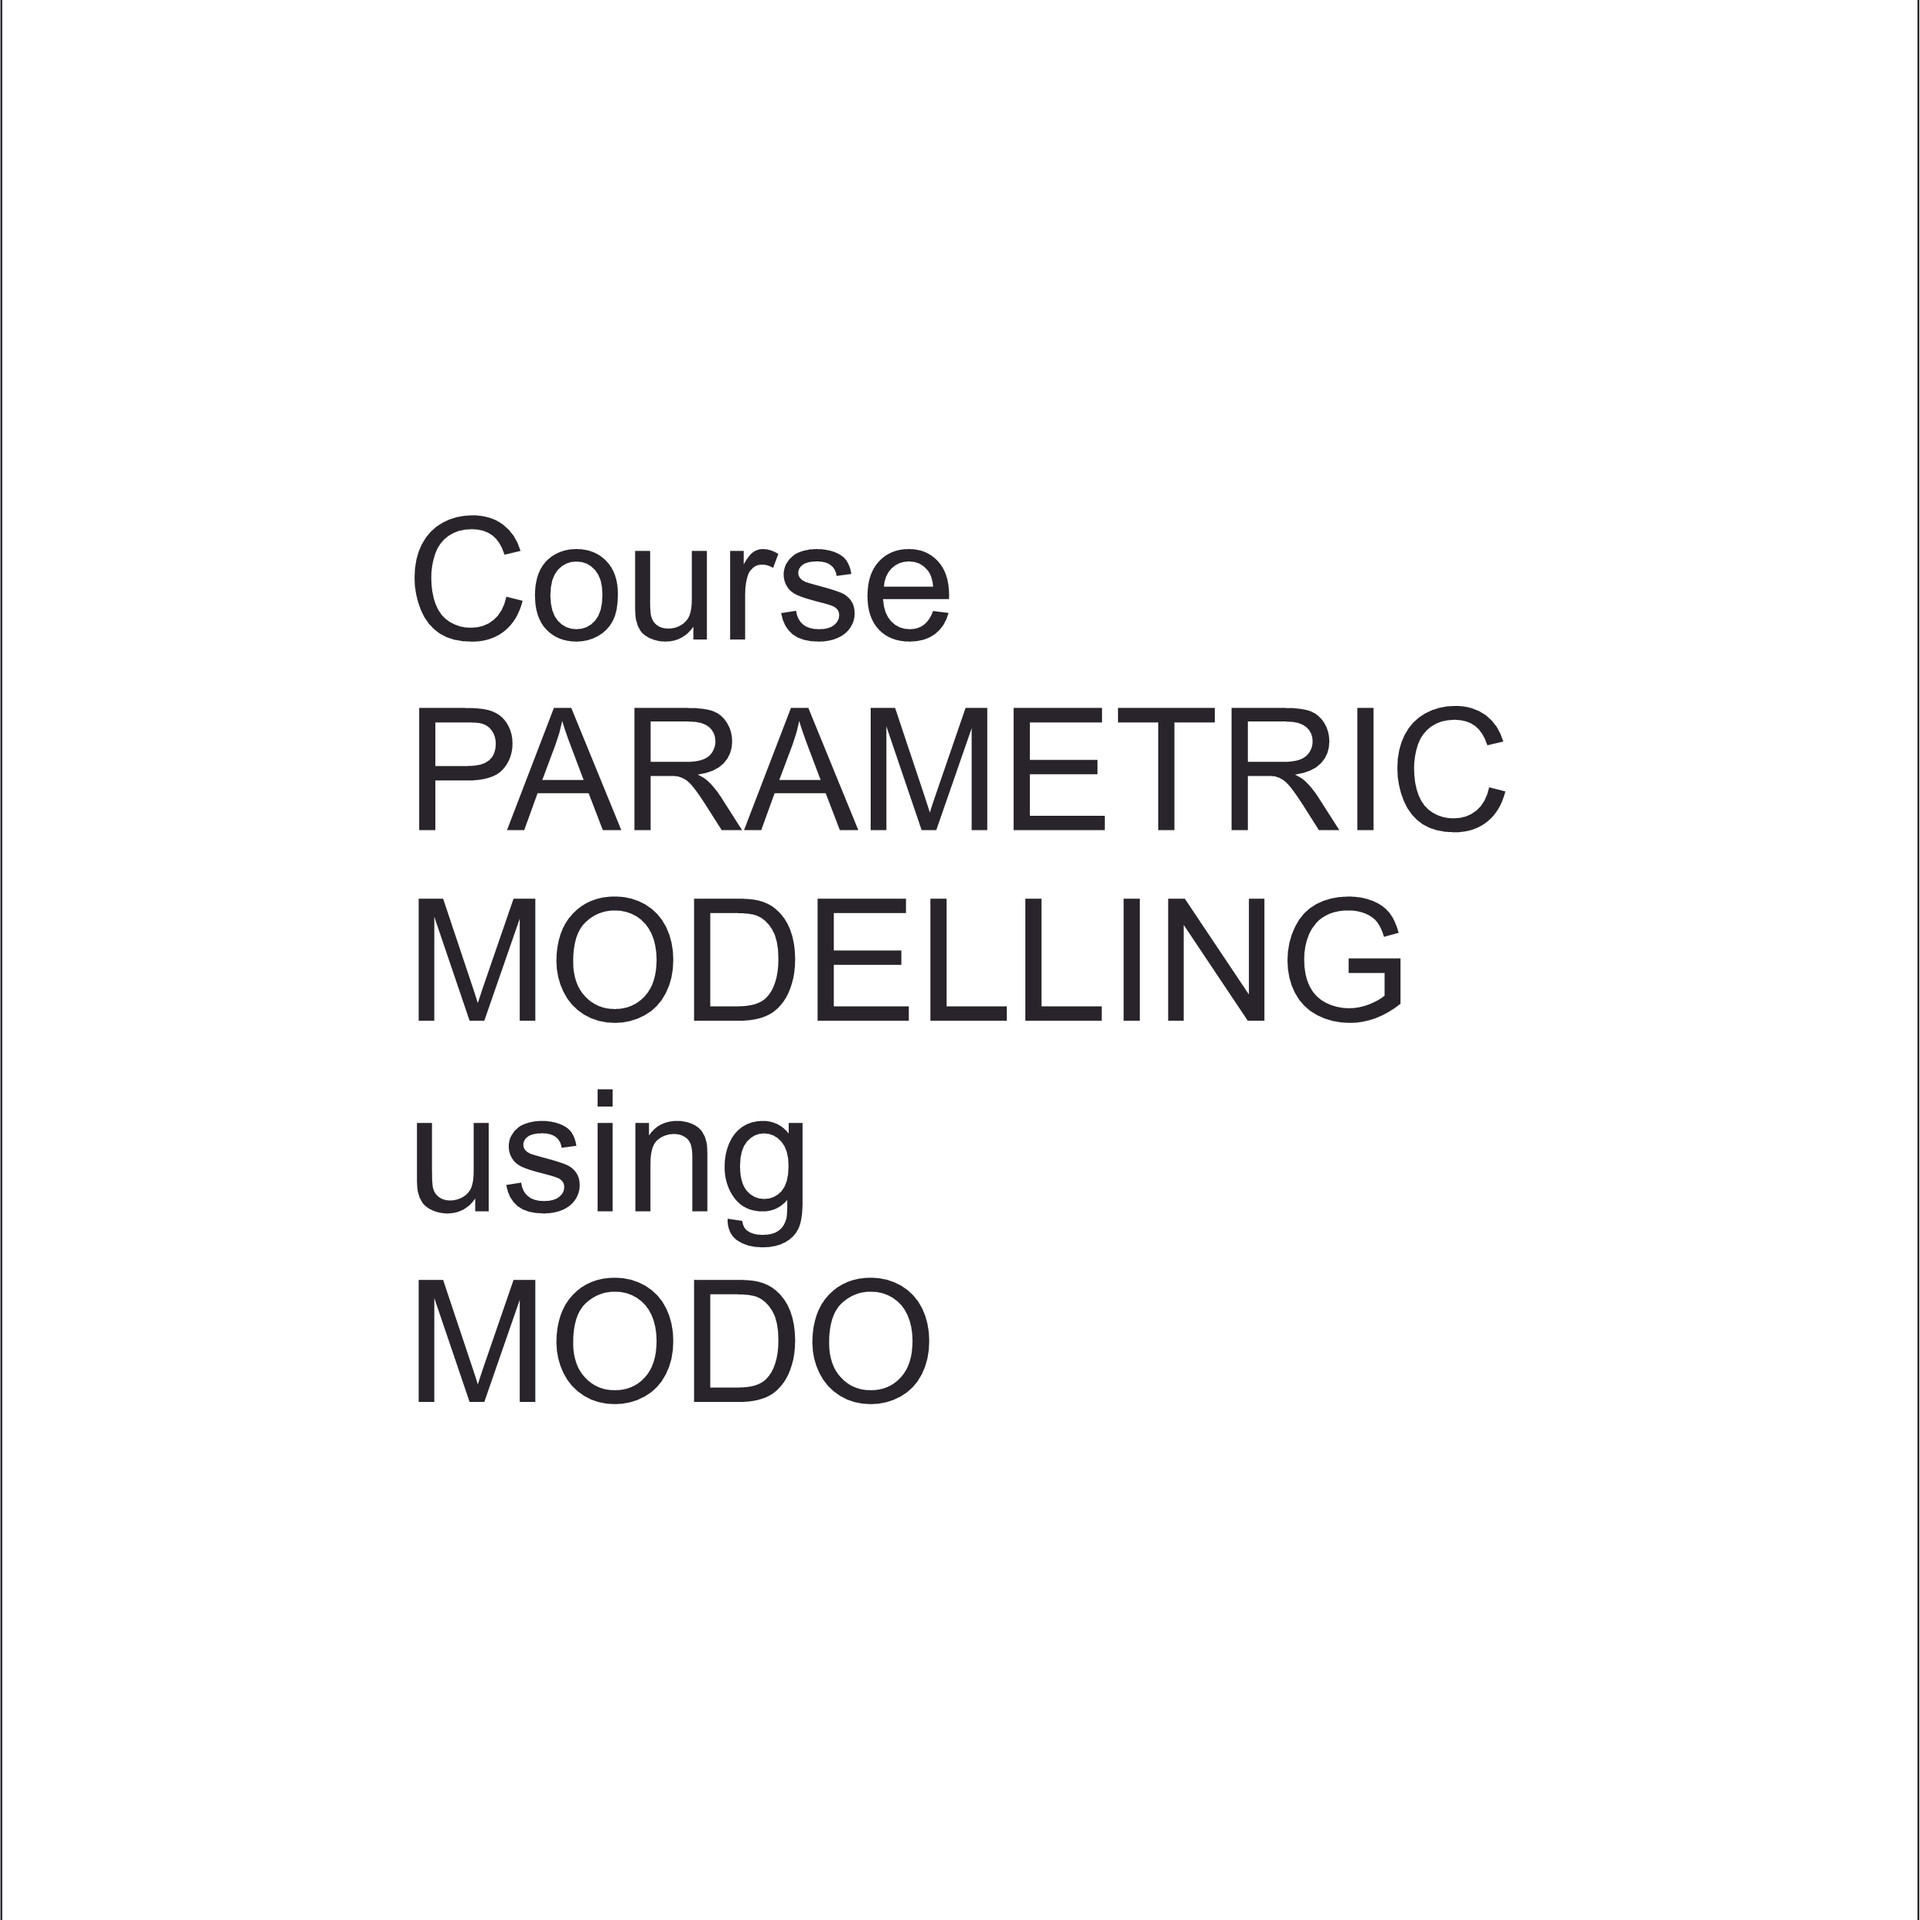 parametric using modo.jpg